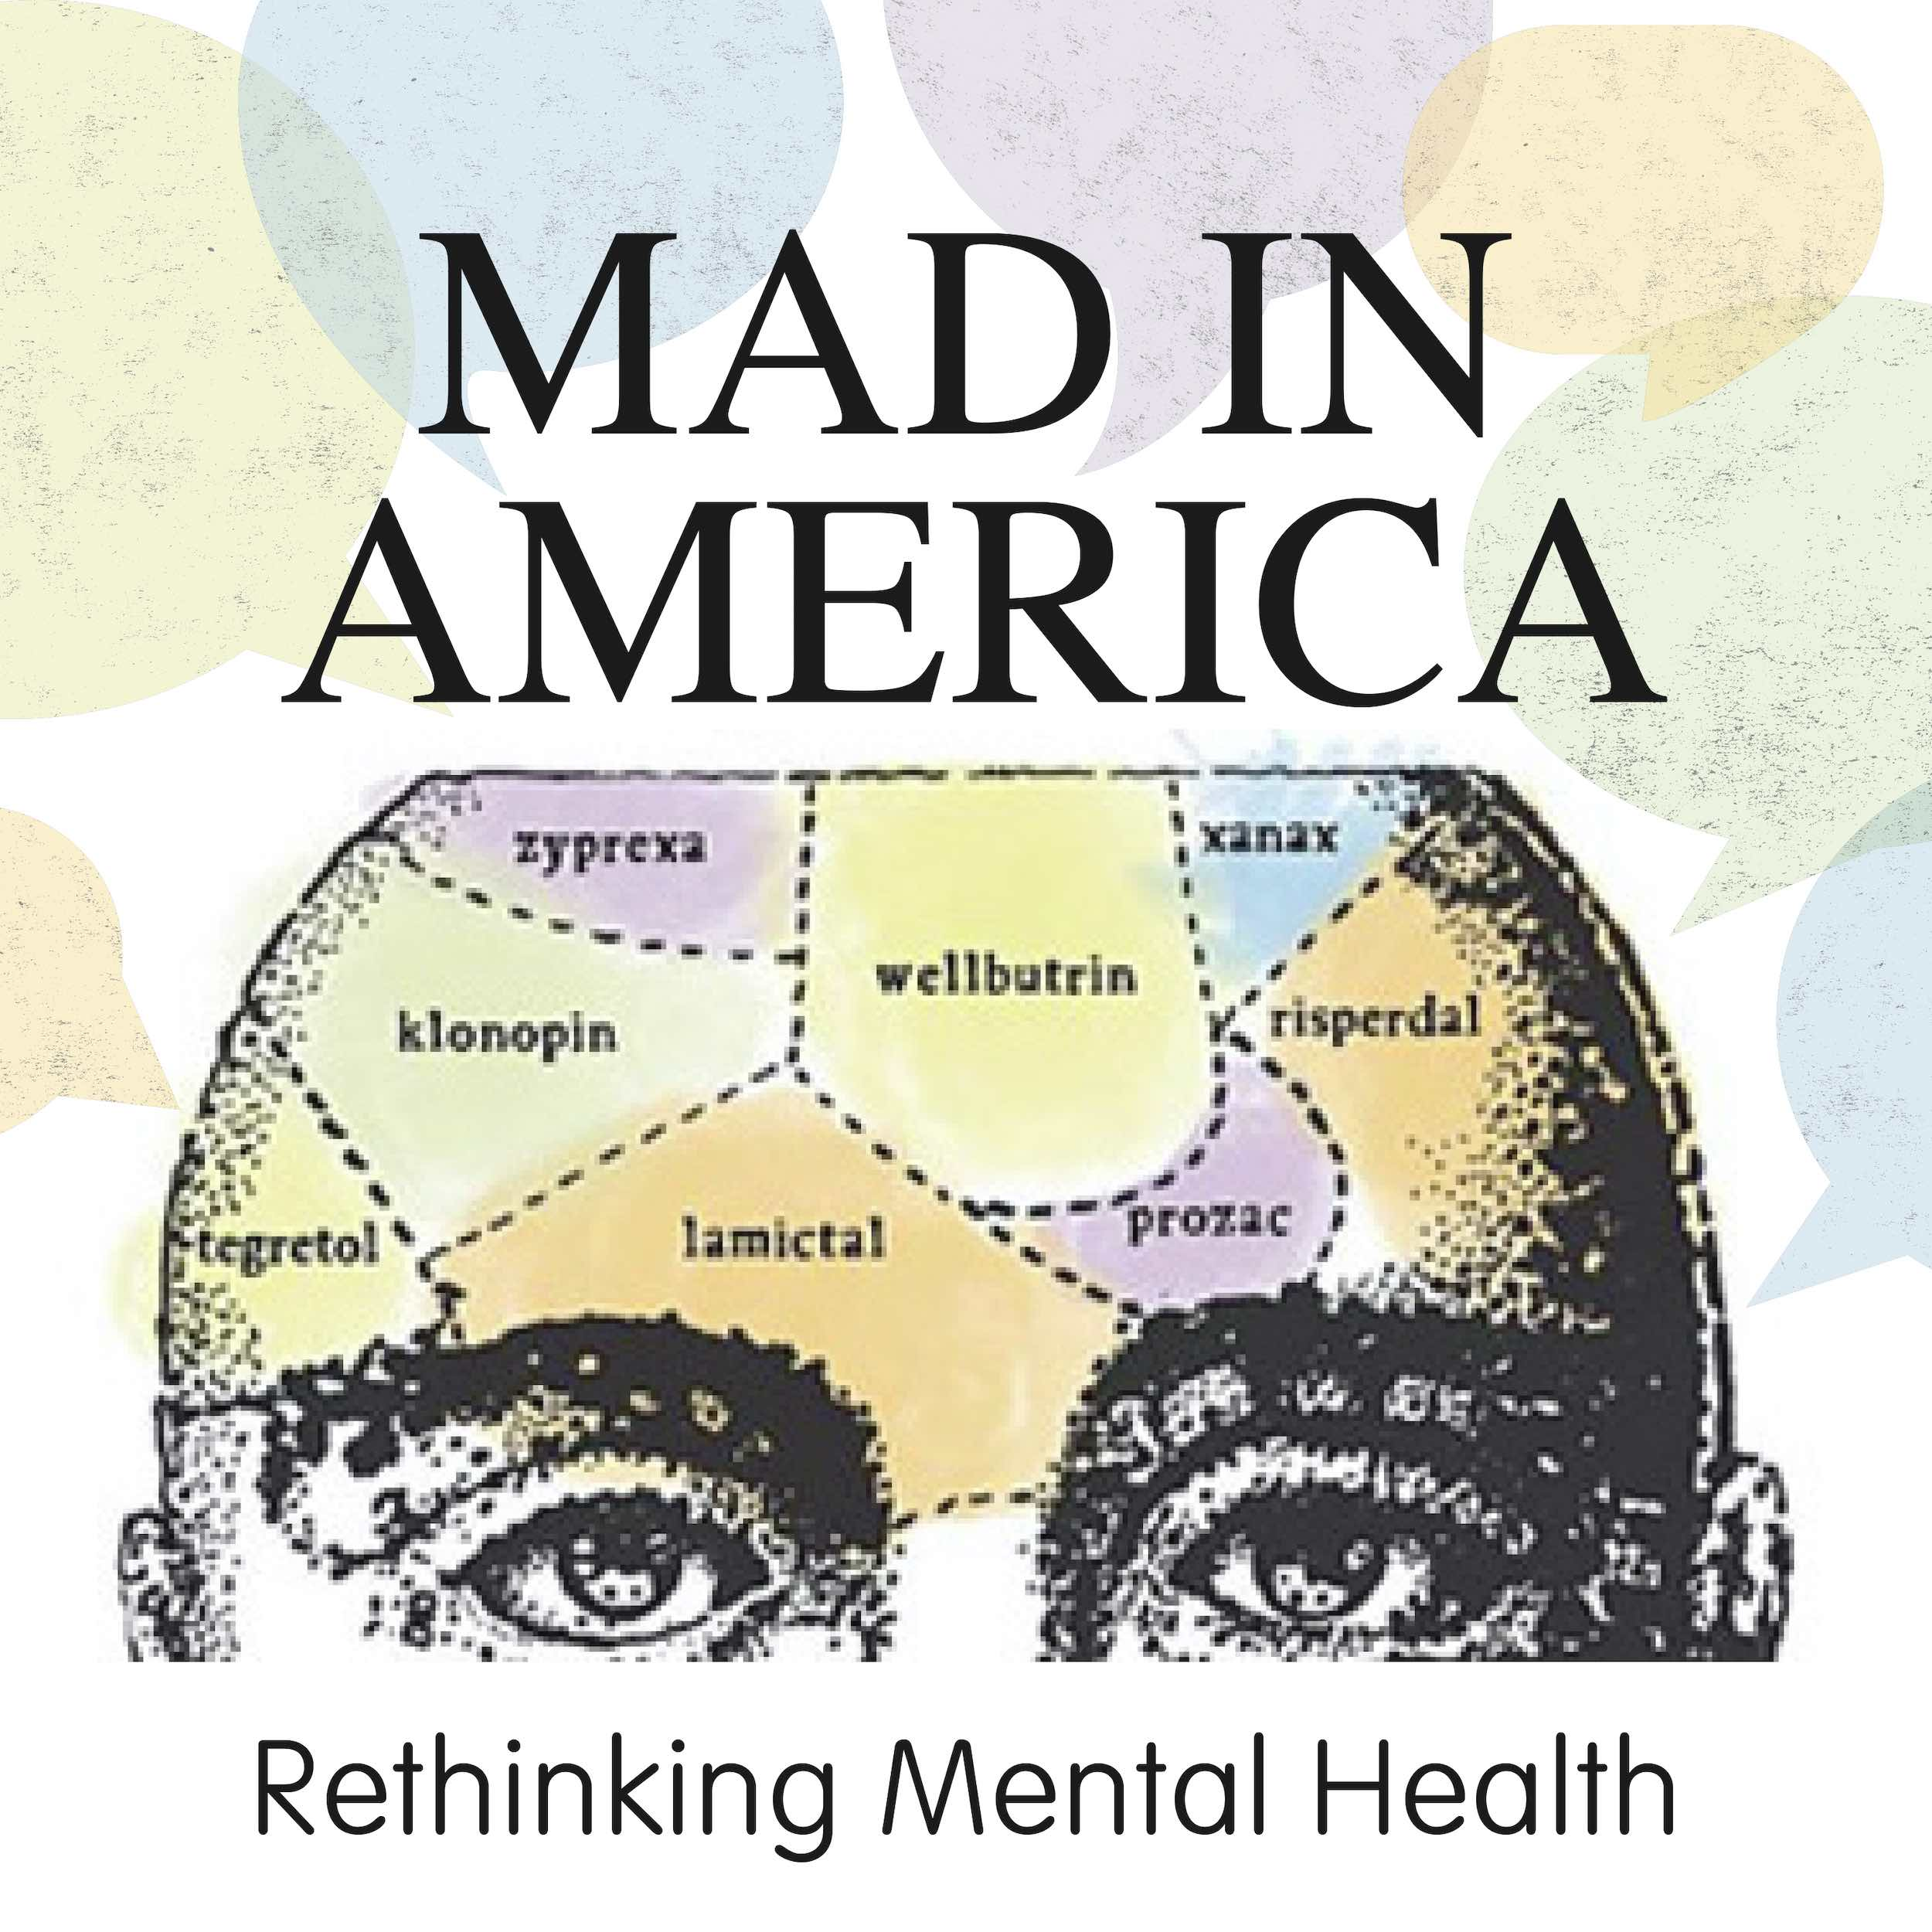 Mad in America: Rethinking Mental Health - Psychological Support for Psychiatric Drug Withdrawal